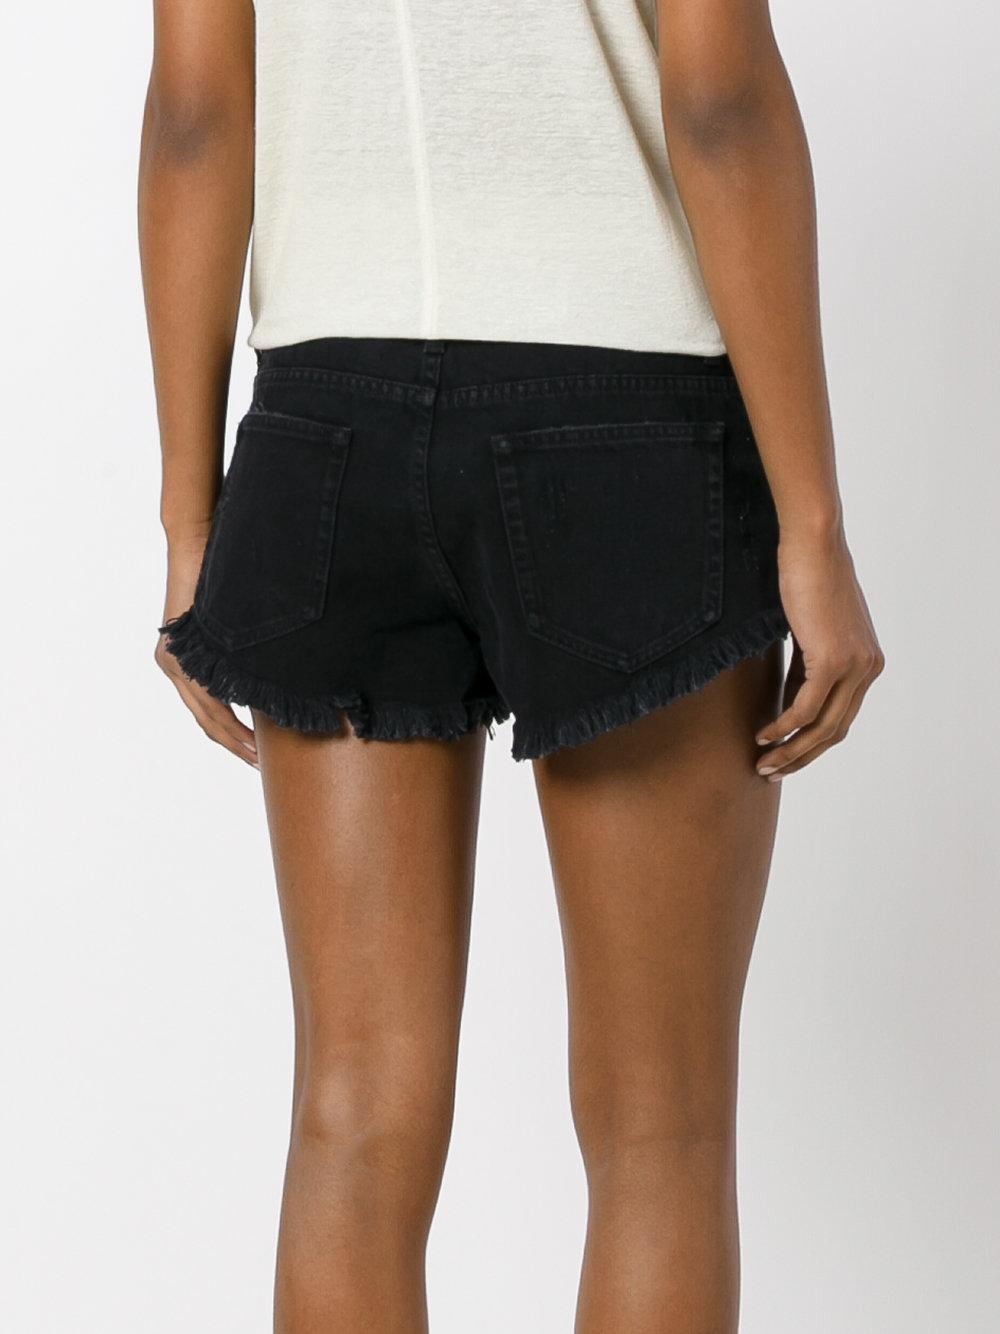 The Kooples Frayed Denim Shorts In Black Lyst